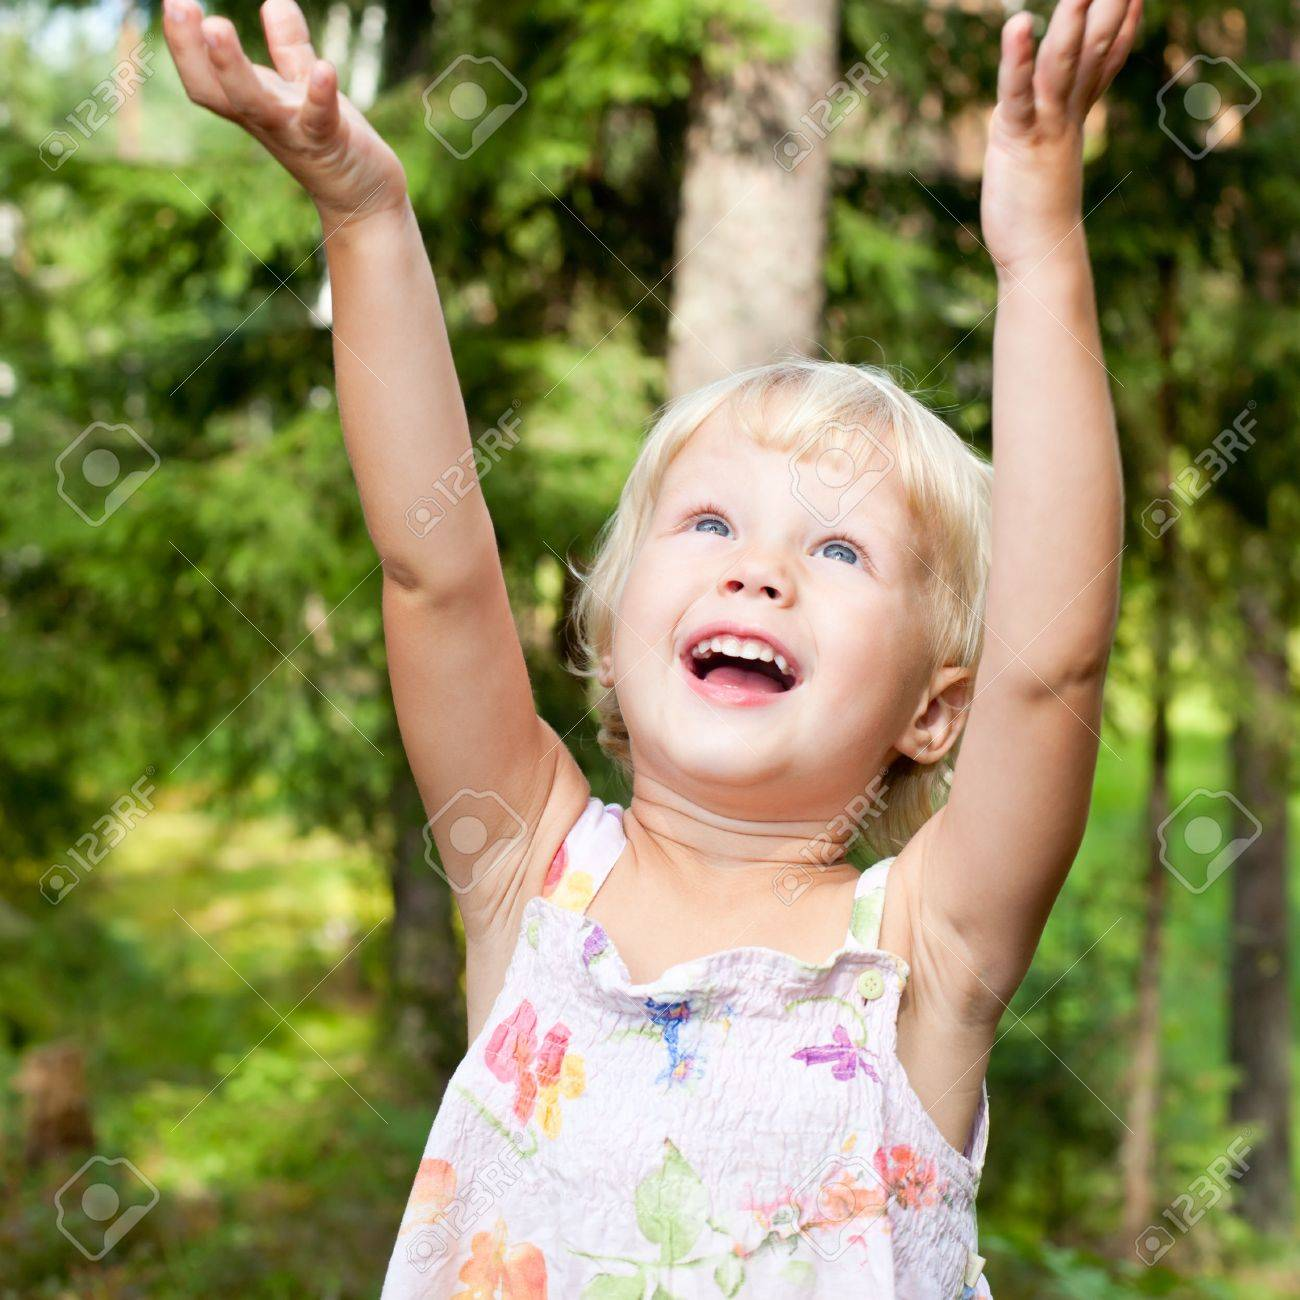 Portrait of cute little girl with hands up in happiness Stock Photo - 7530571